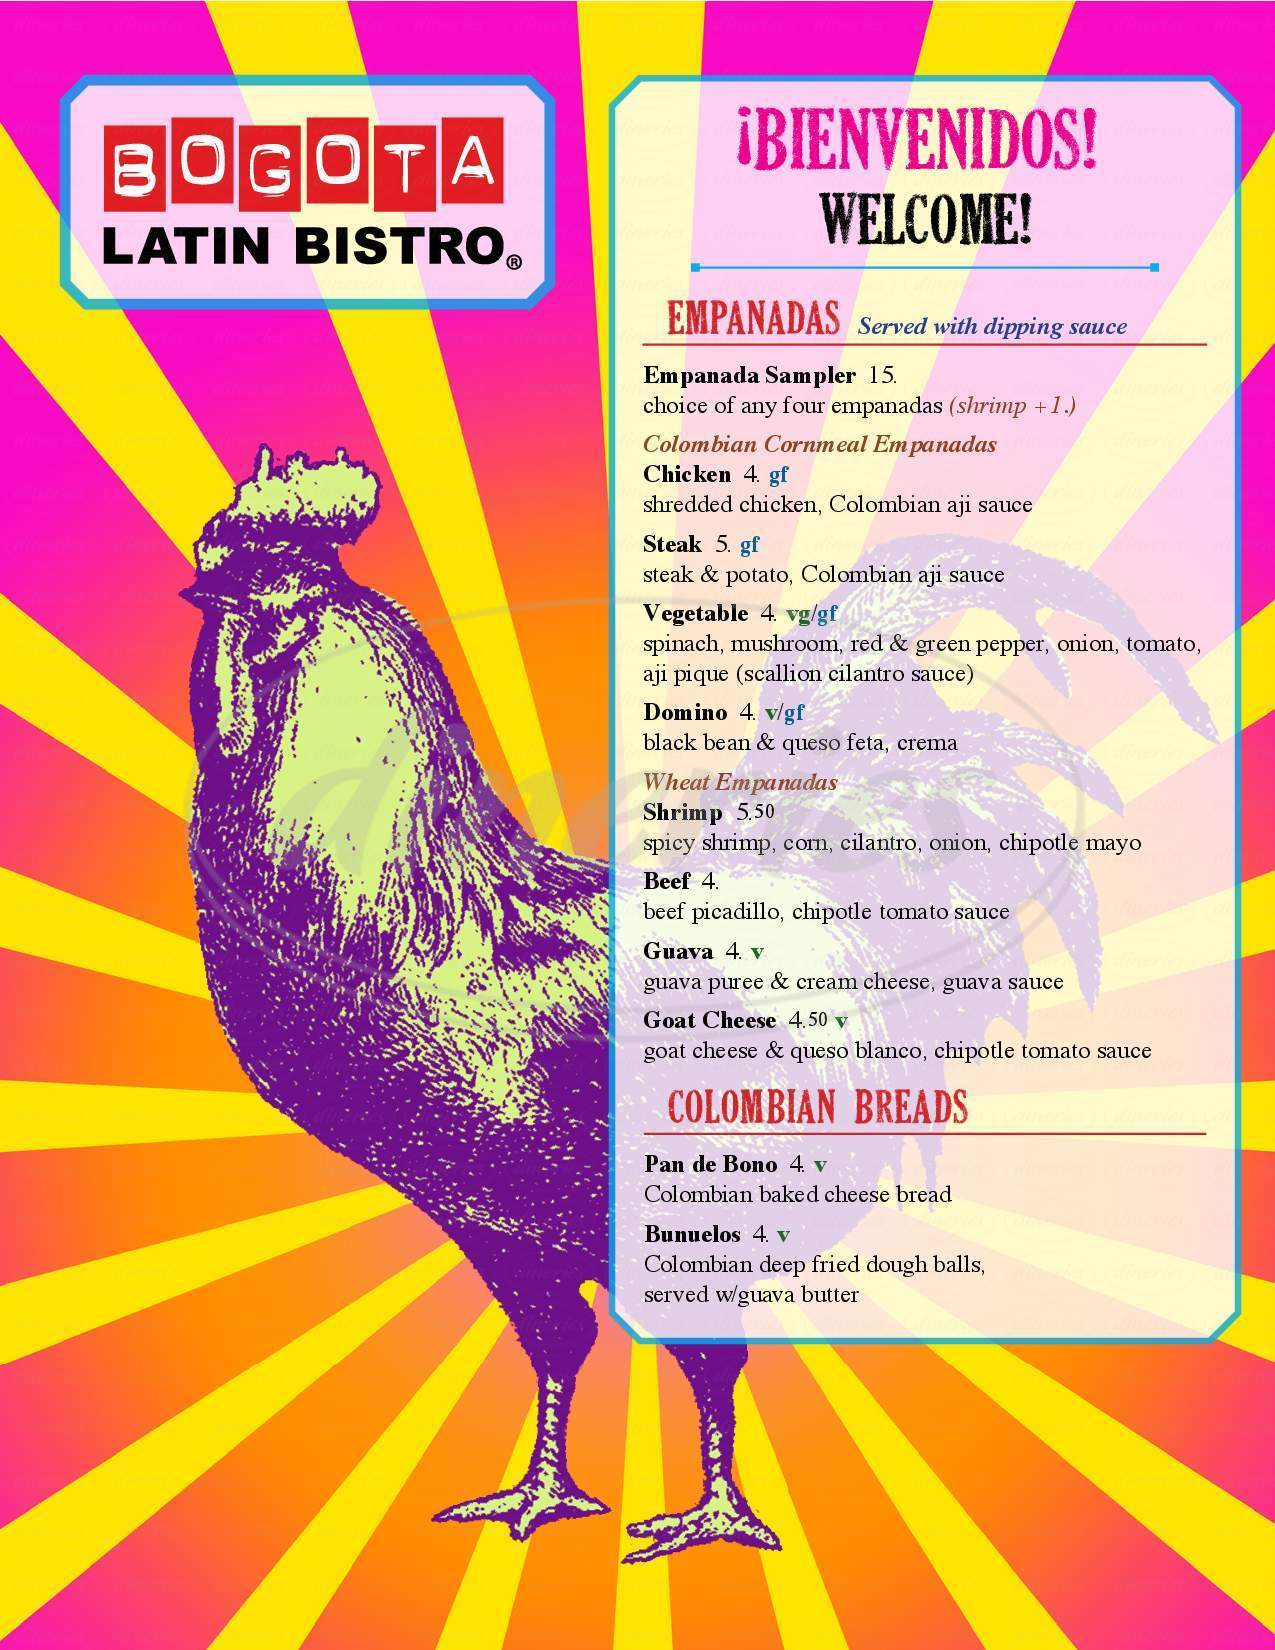 menu for Bogota Latin Bistro